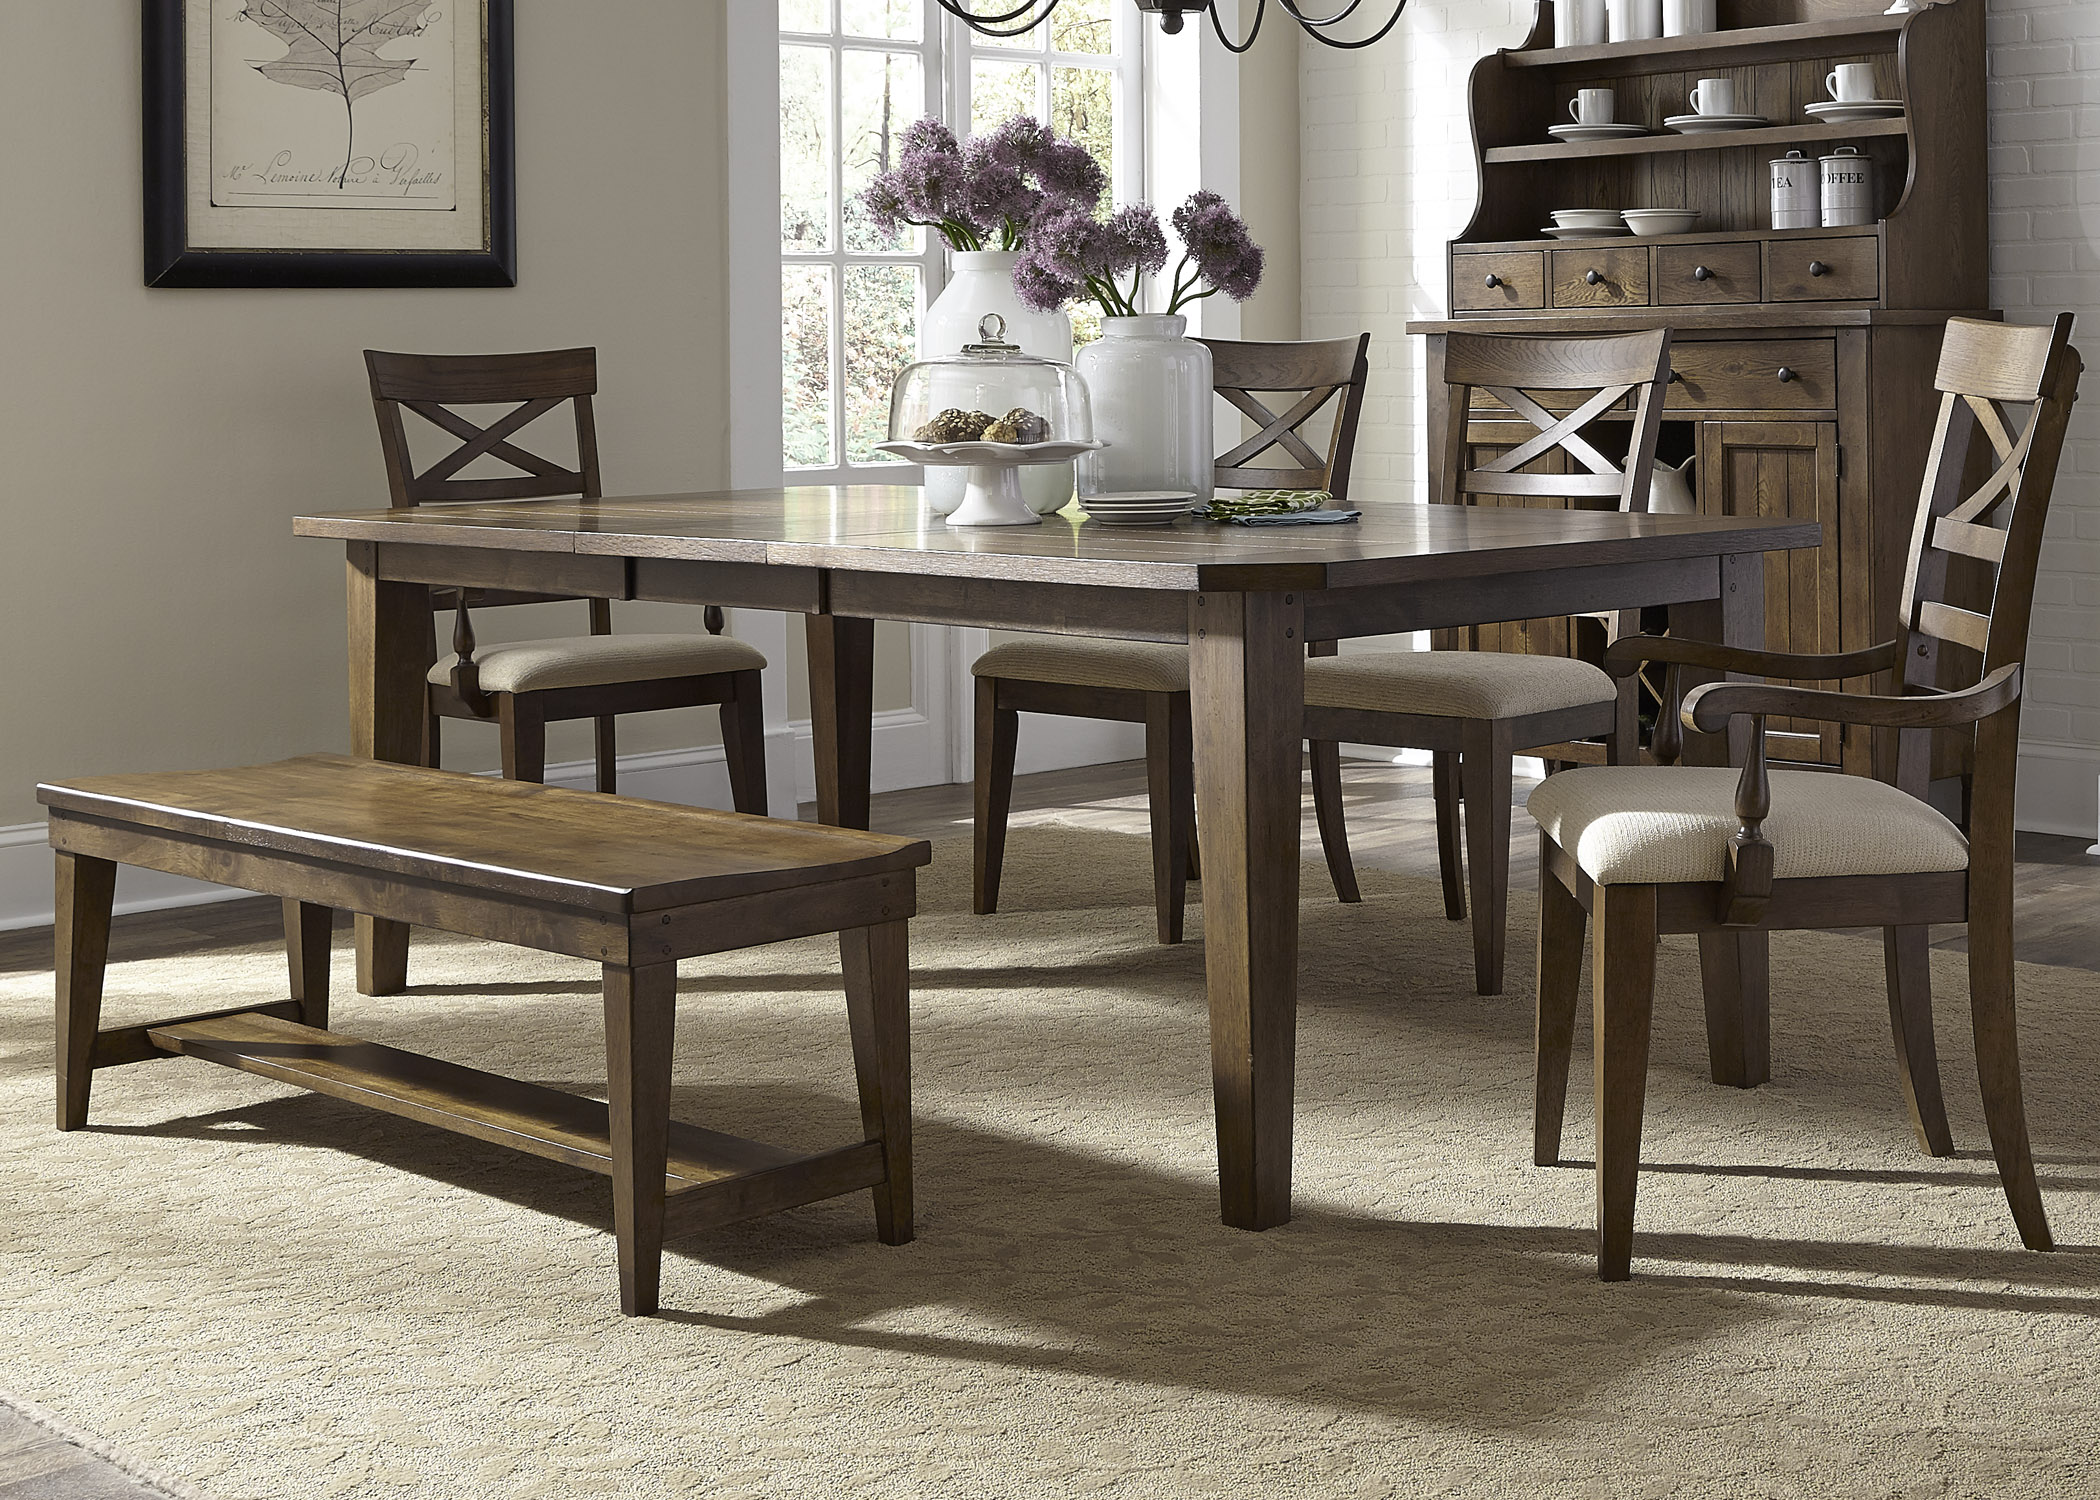 Liberty furniture hearthstone mission style 6 piece for Furniture options